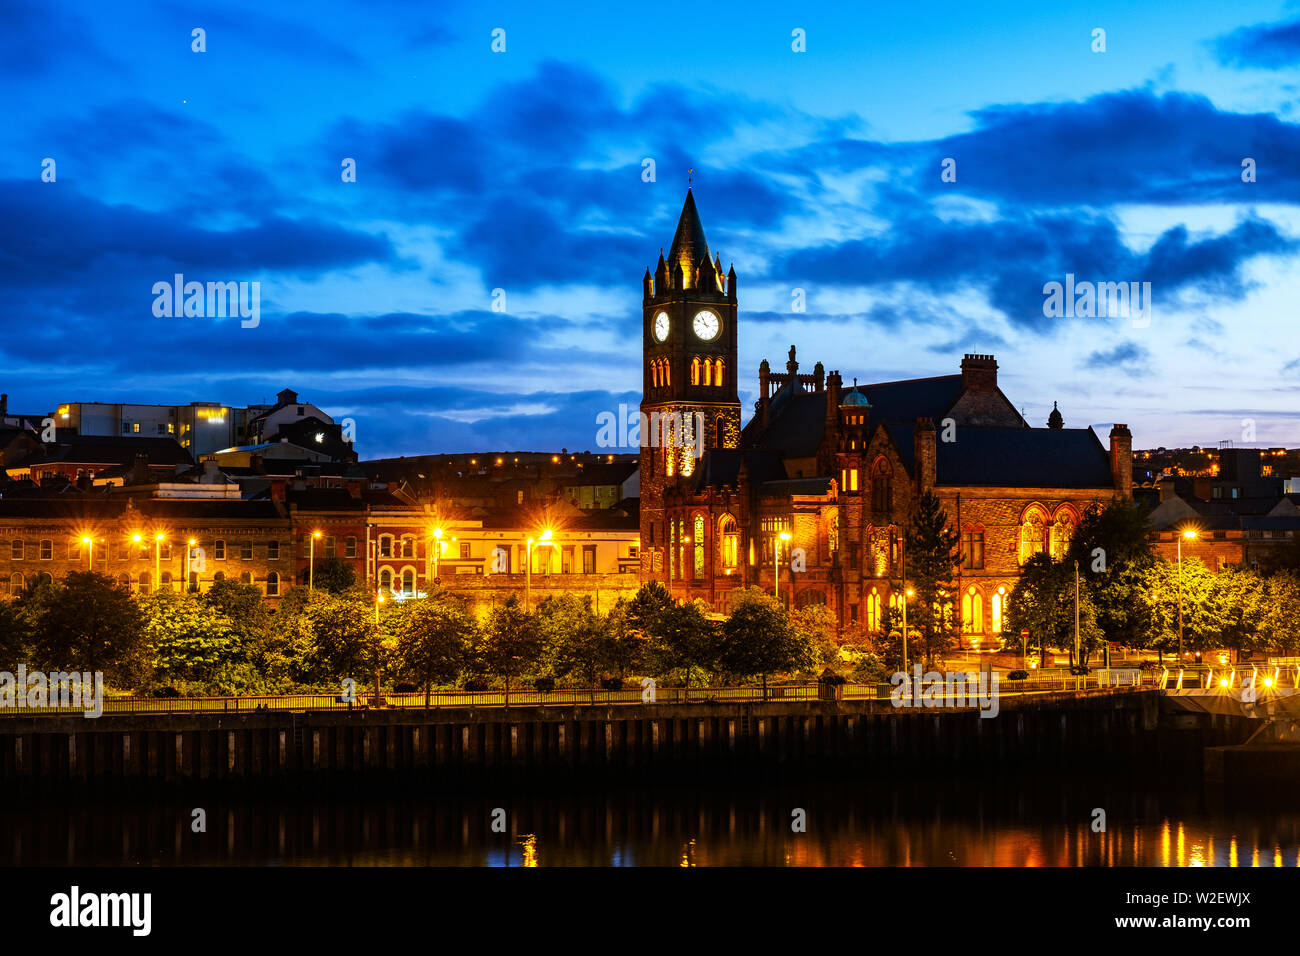 Derry, Northern Ireland. Illuminated Cathedral in Derry Londonderry in Northern Ireland with city center at the background. Night cloudy sky, reflecti - Stock Image